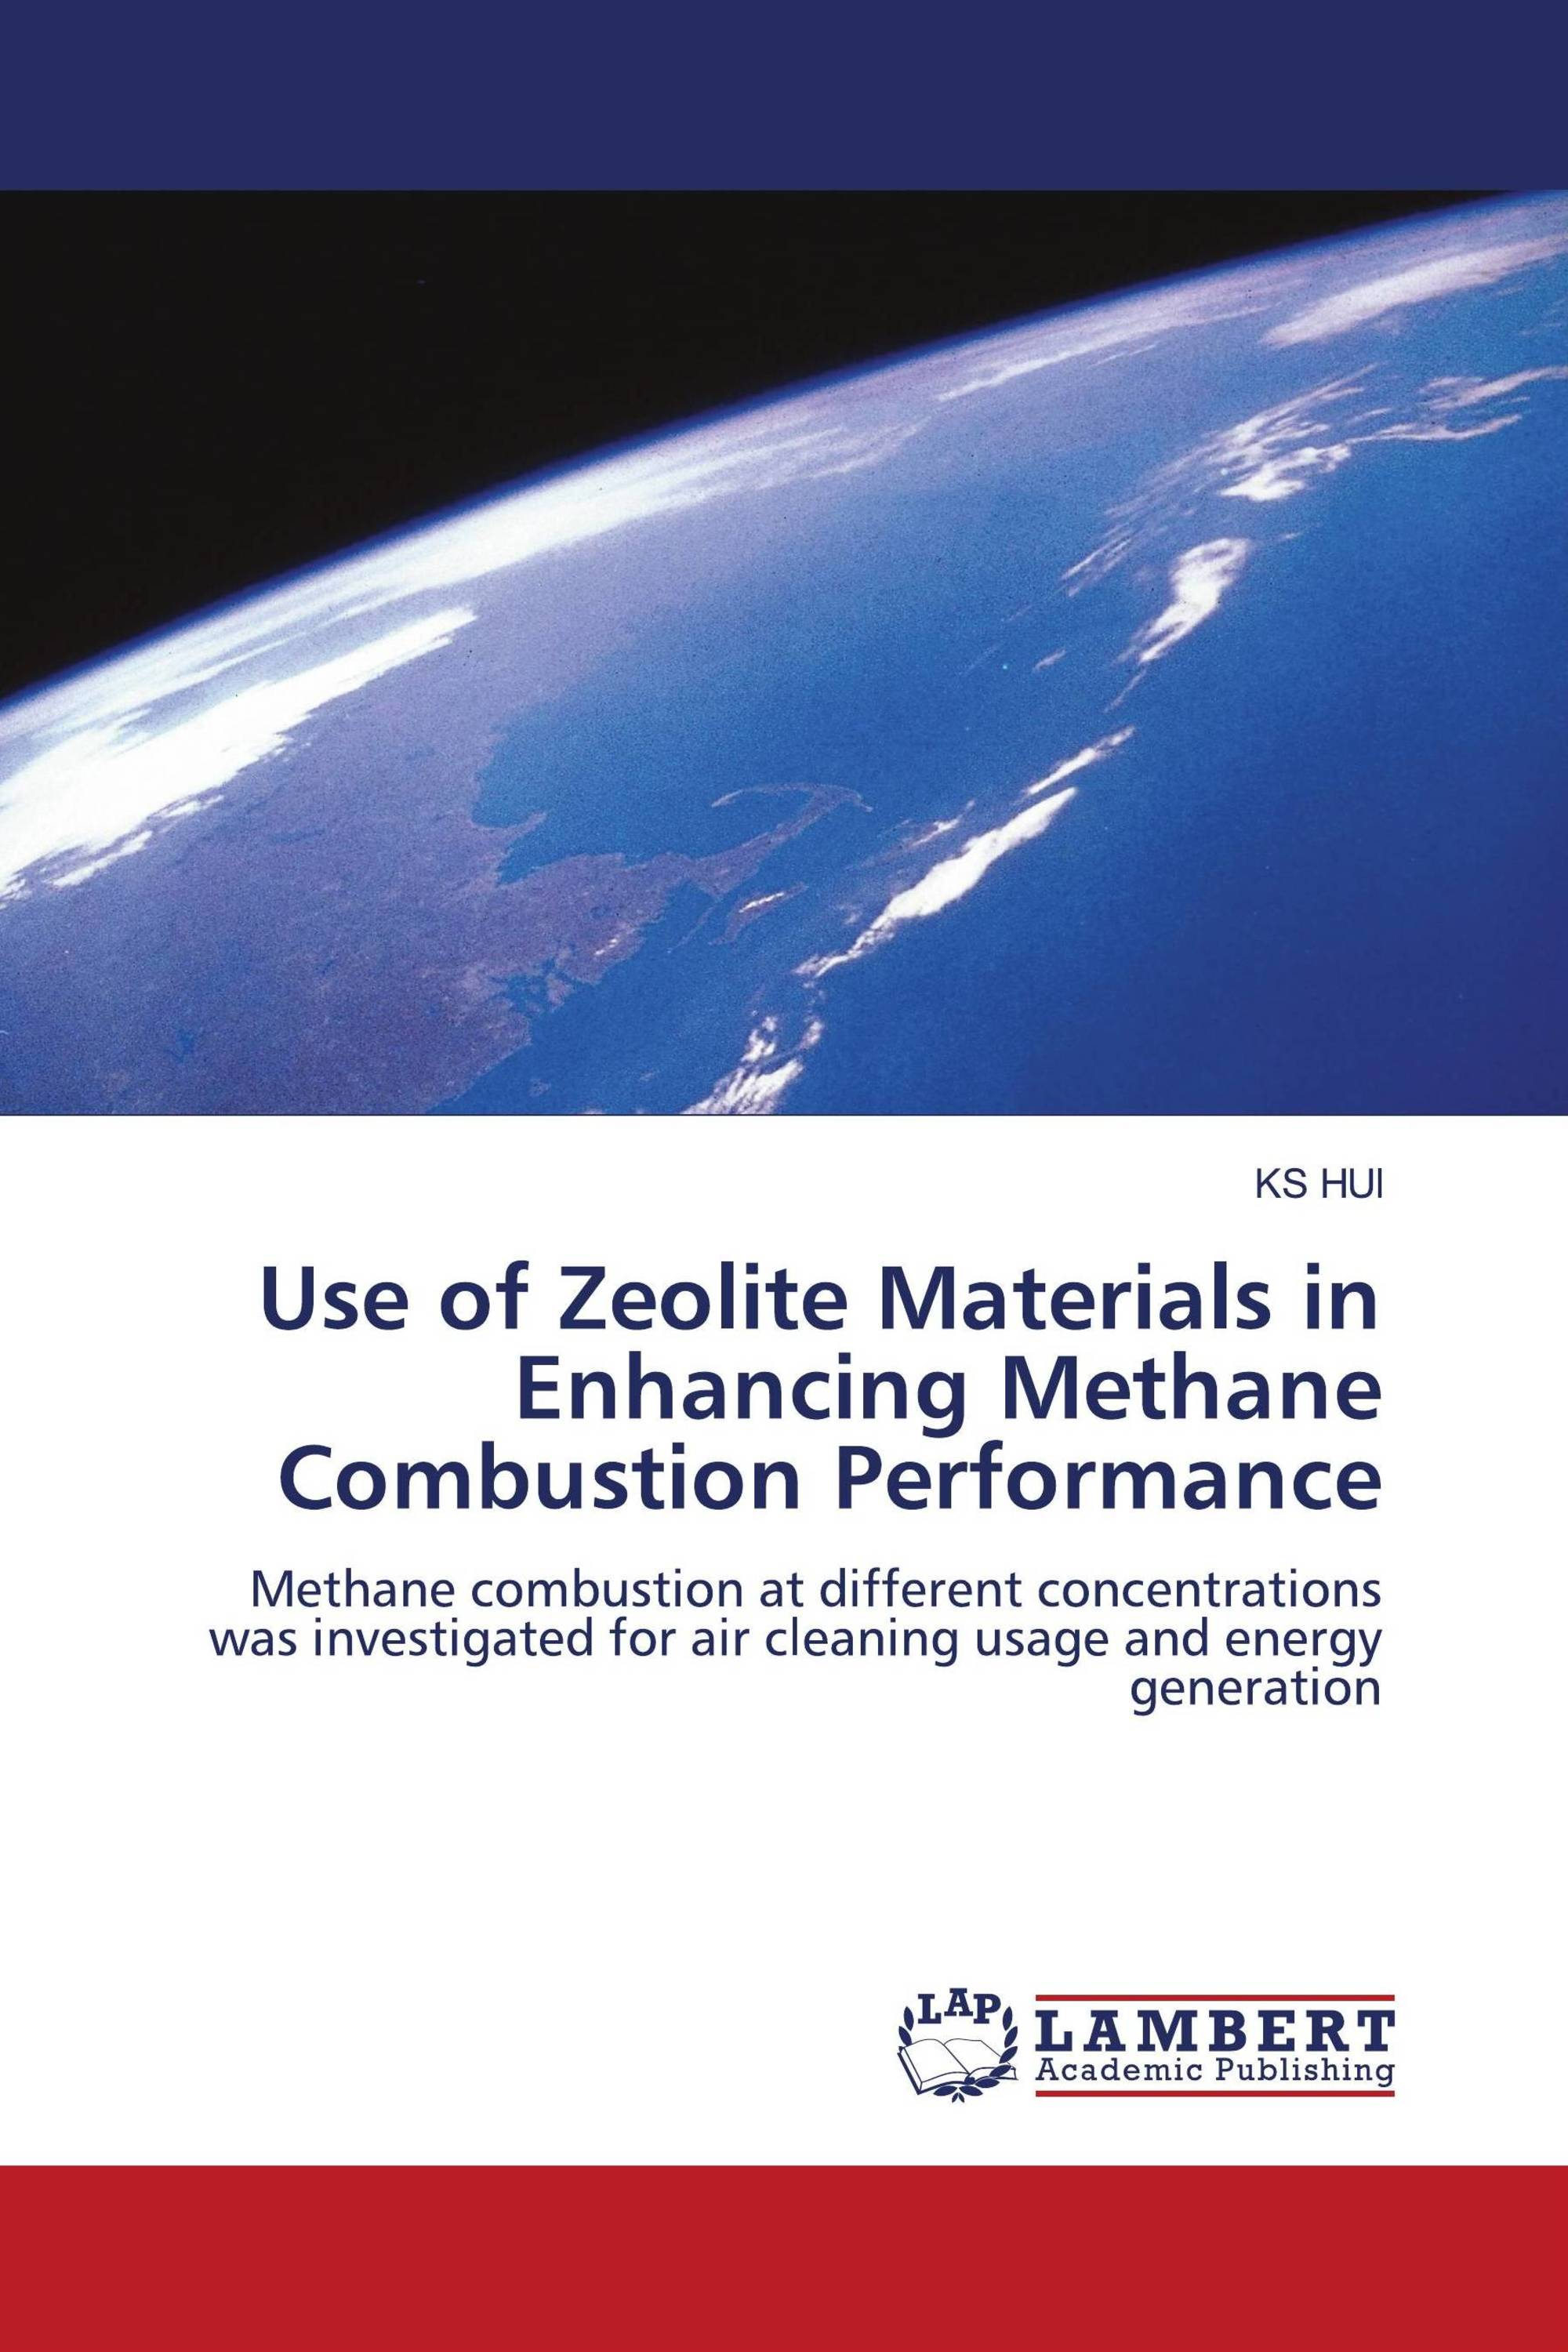 Use of Zeolite Materials in Enhancing Methane Combustion Performance